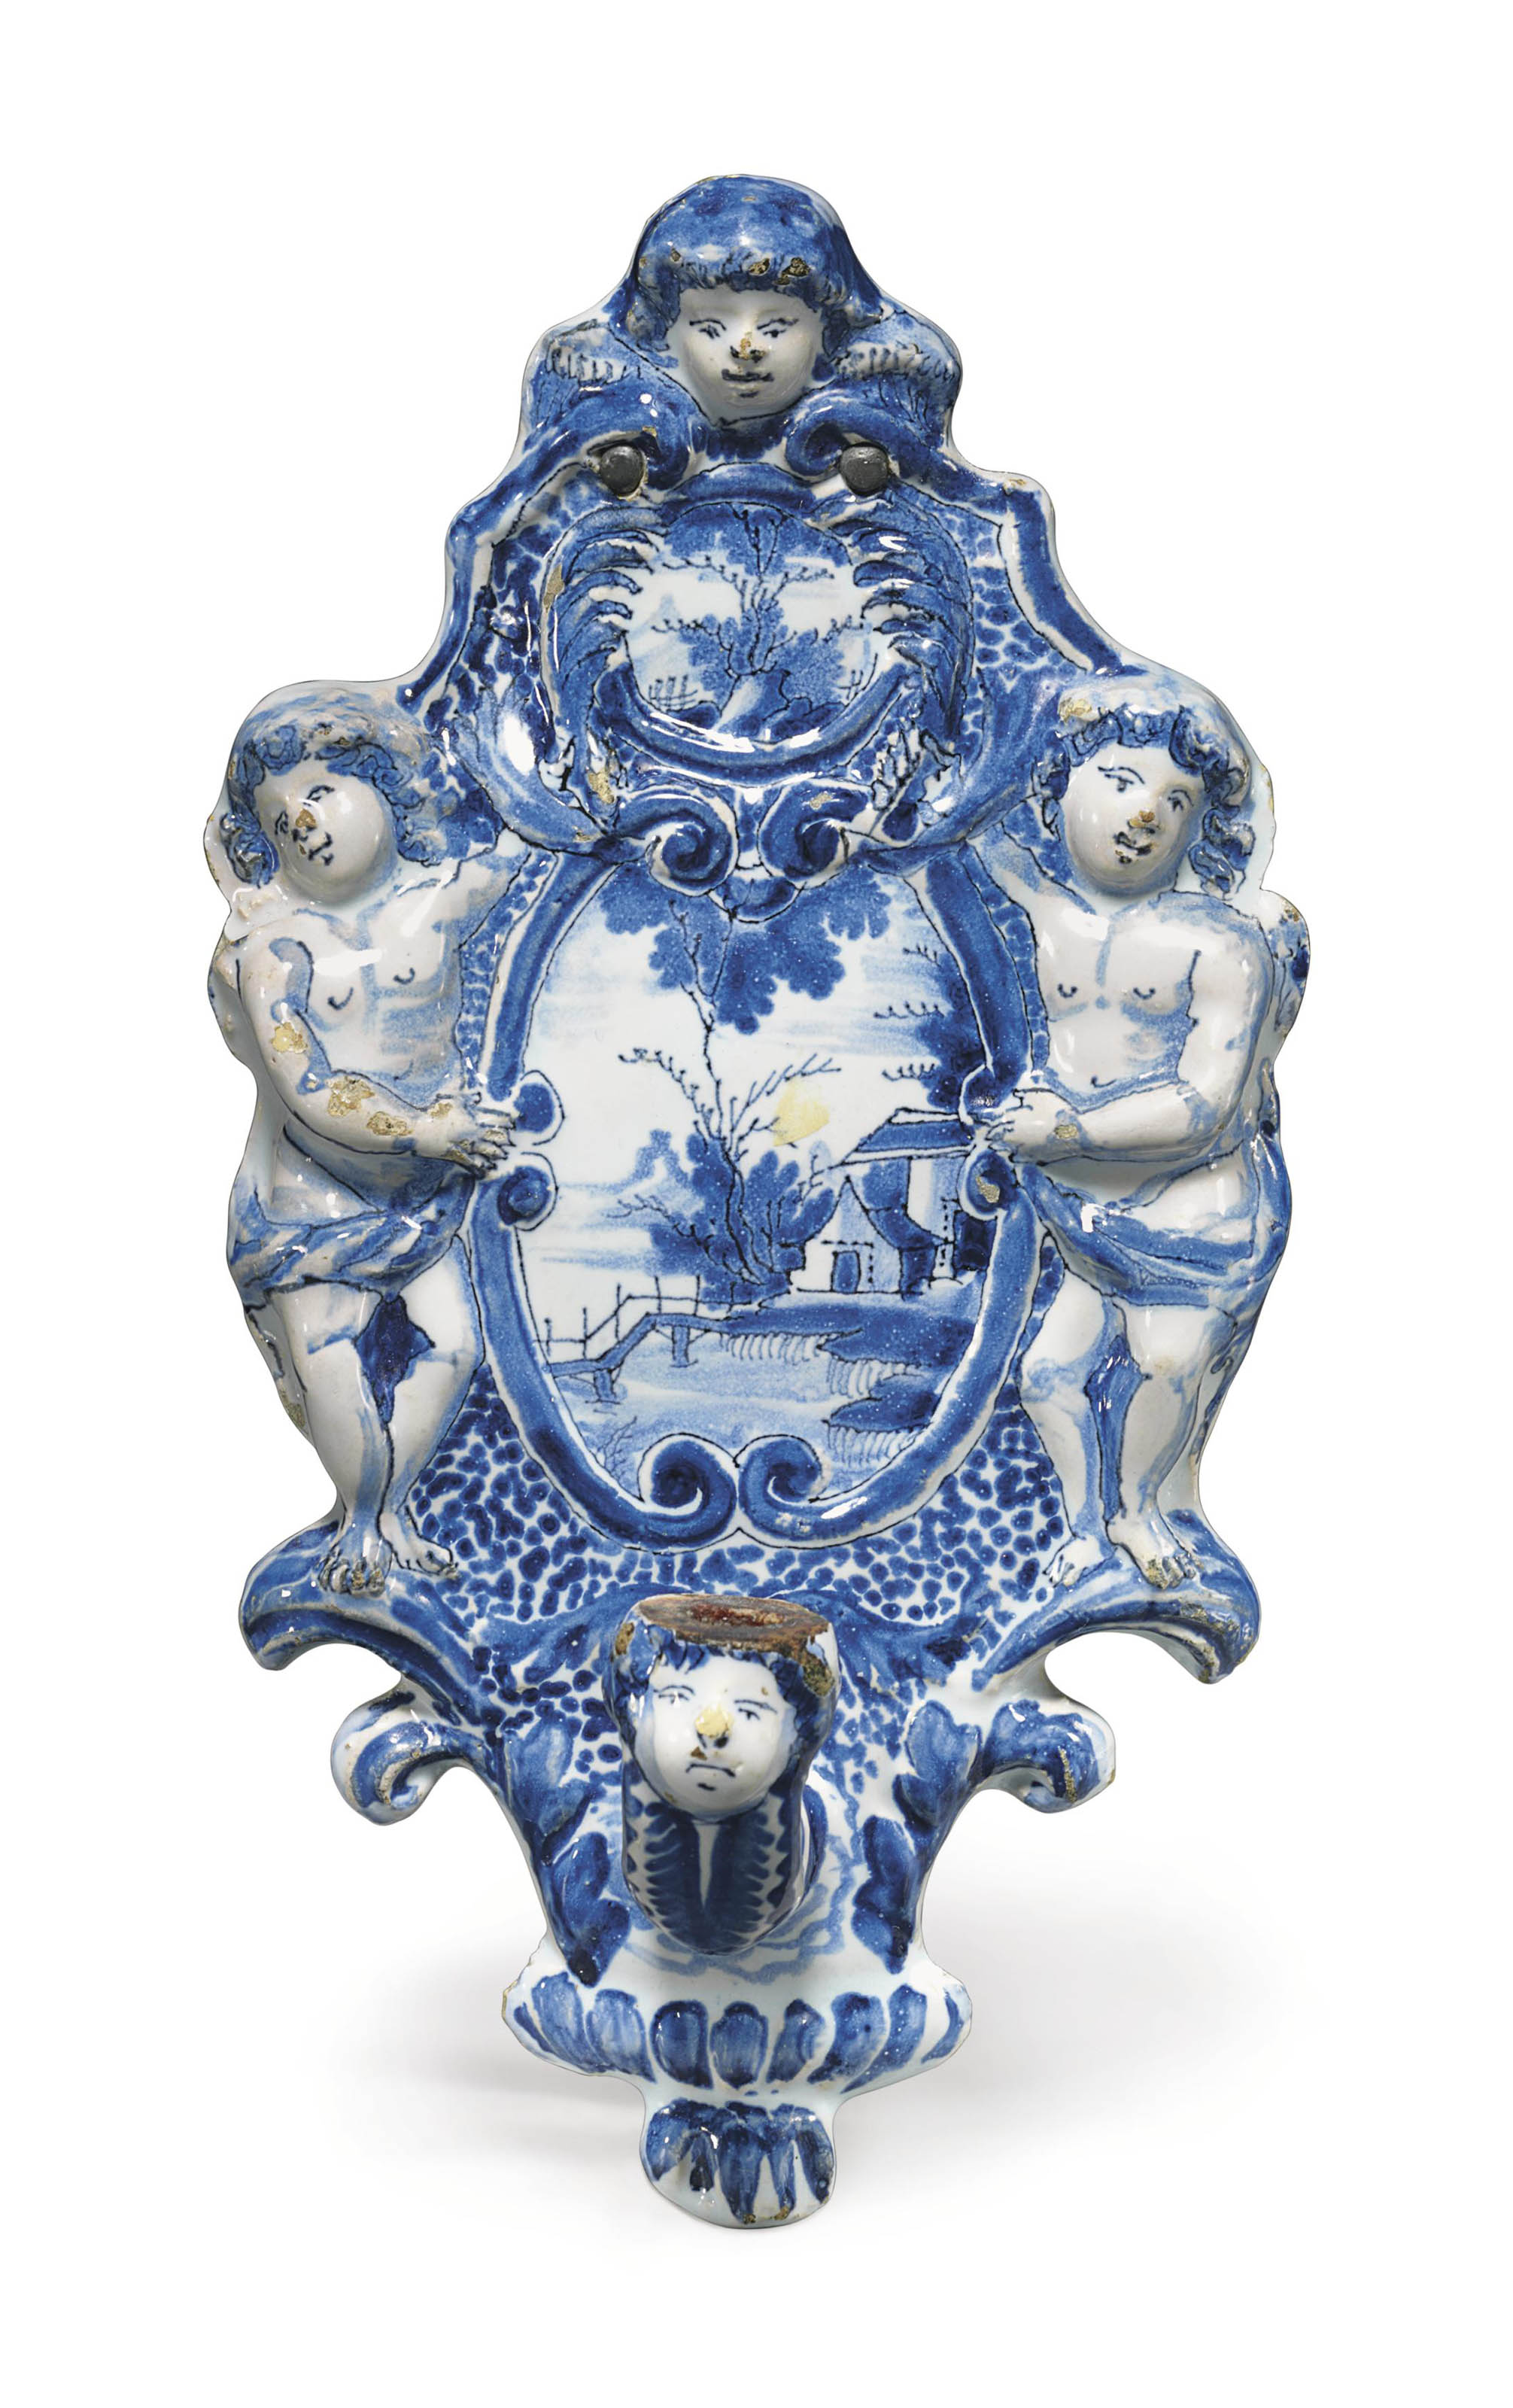 A Dutch Delft Blue And White Wall Sconce Early 18th Century